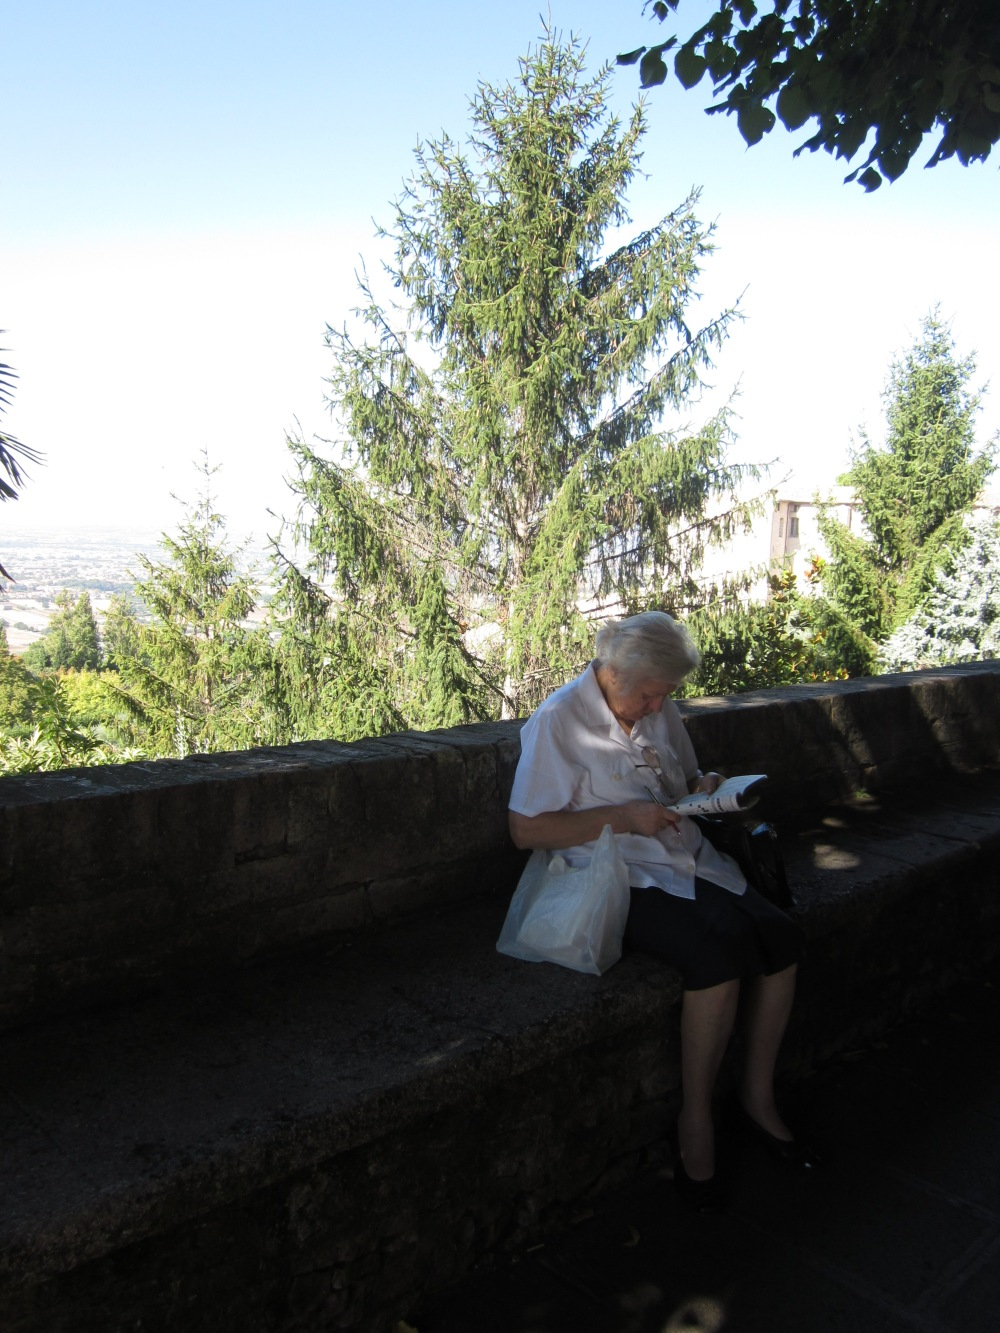 The lady who was doing her crossword puzzles in Assisi -- Copyright  Francesca Mignosa 2013